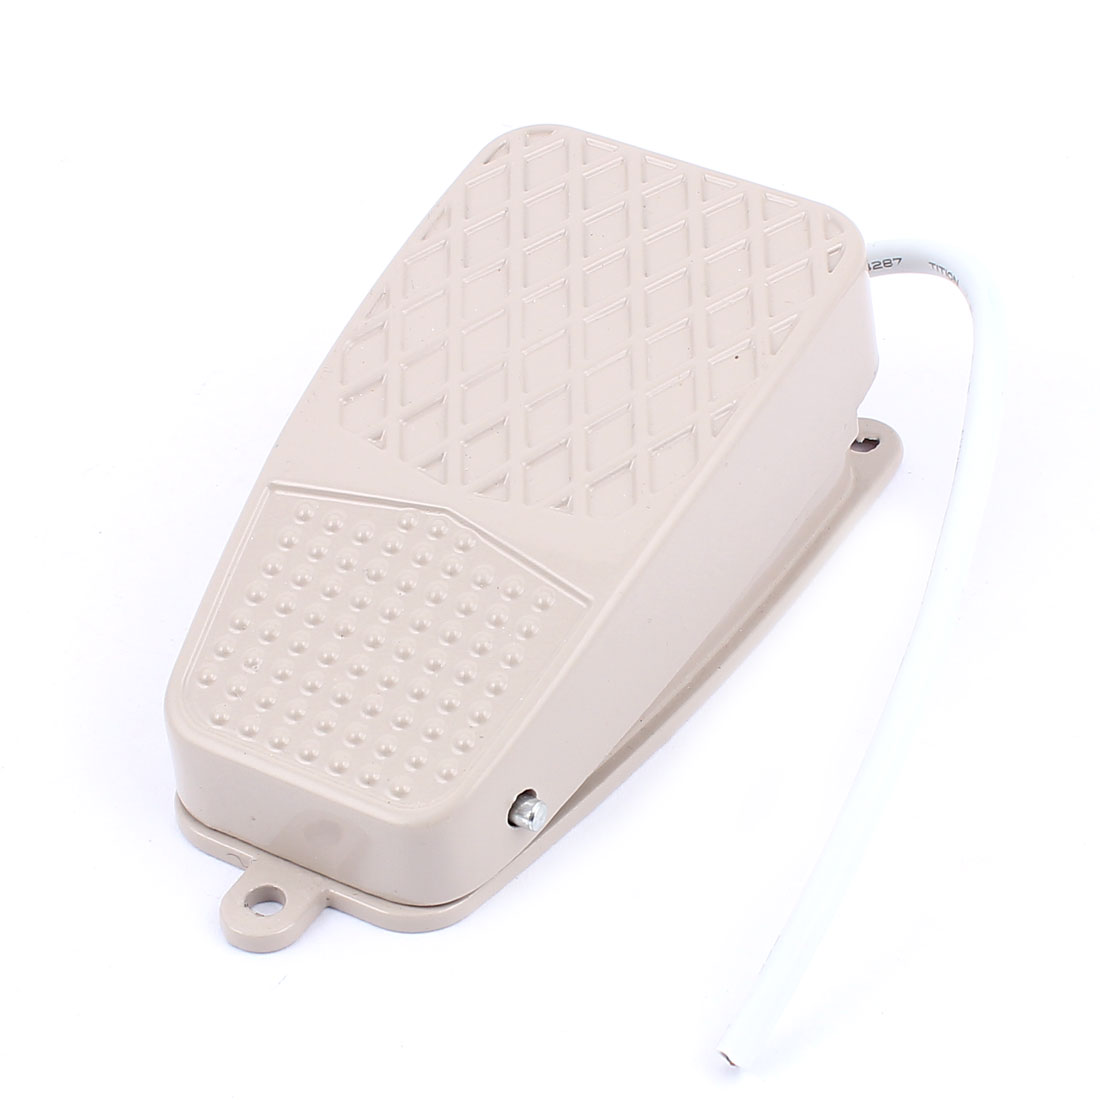 TDFS-2 10A250VA SPDT NO NC Foot Pedal Hands Free Momentary Switch